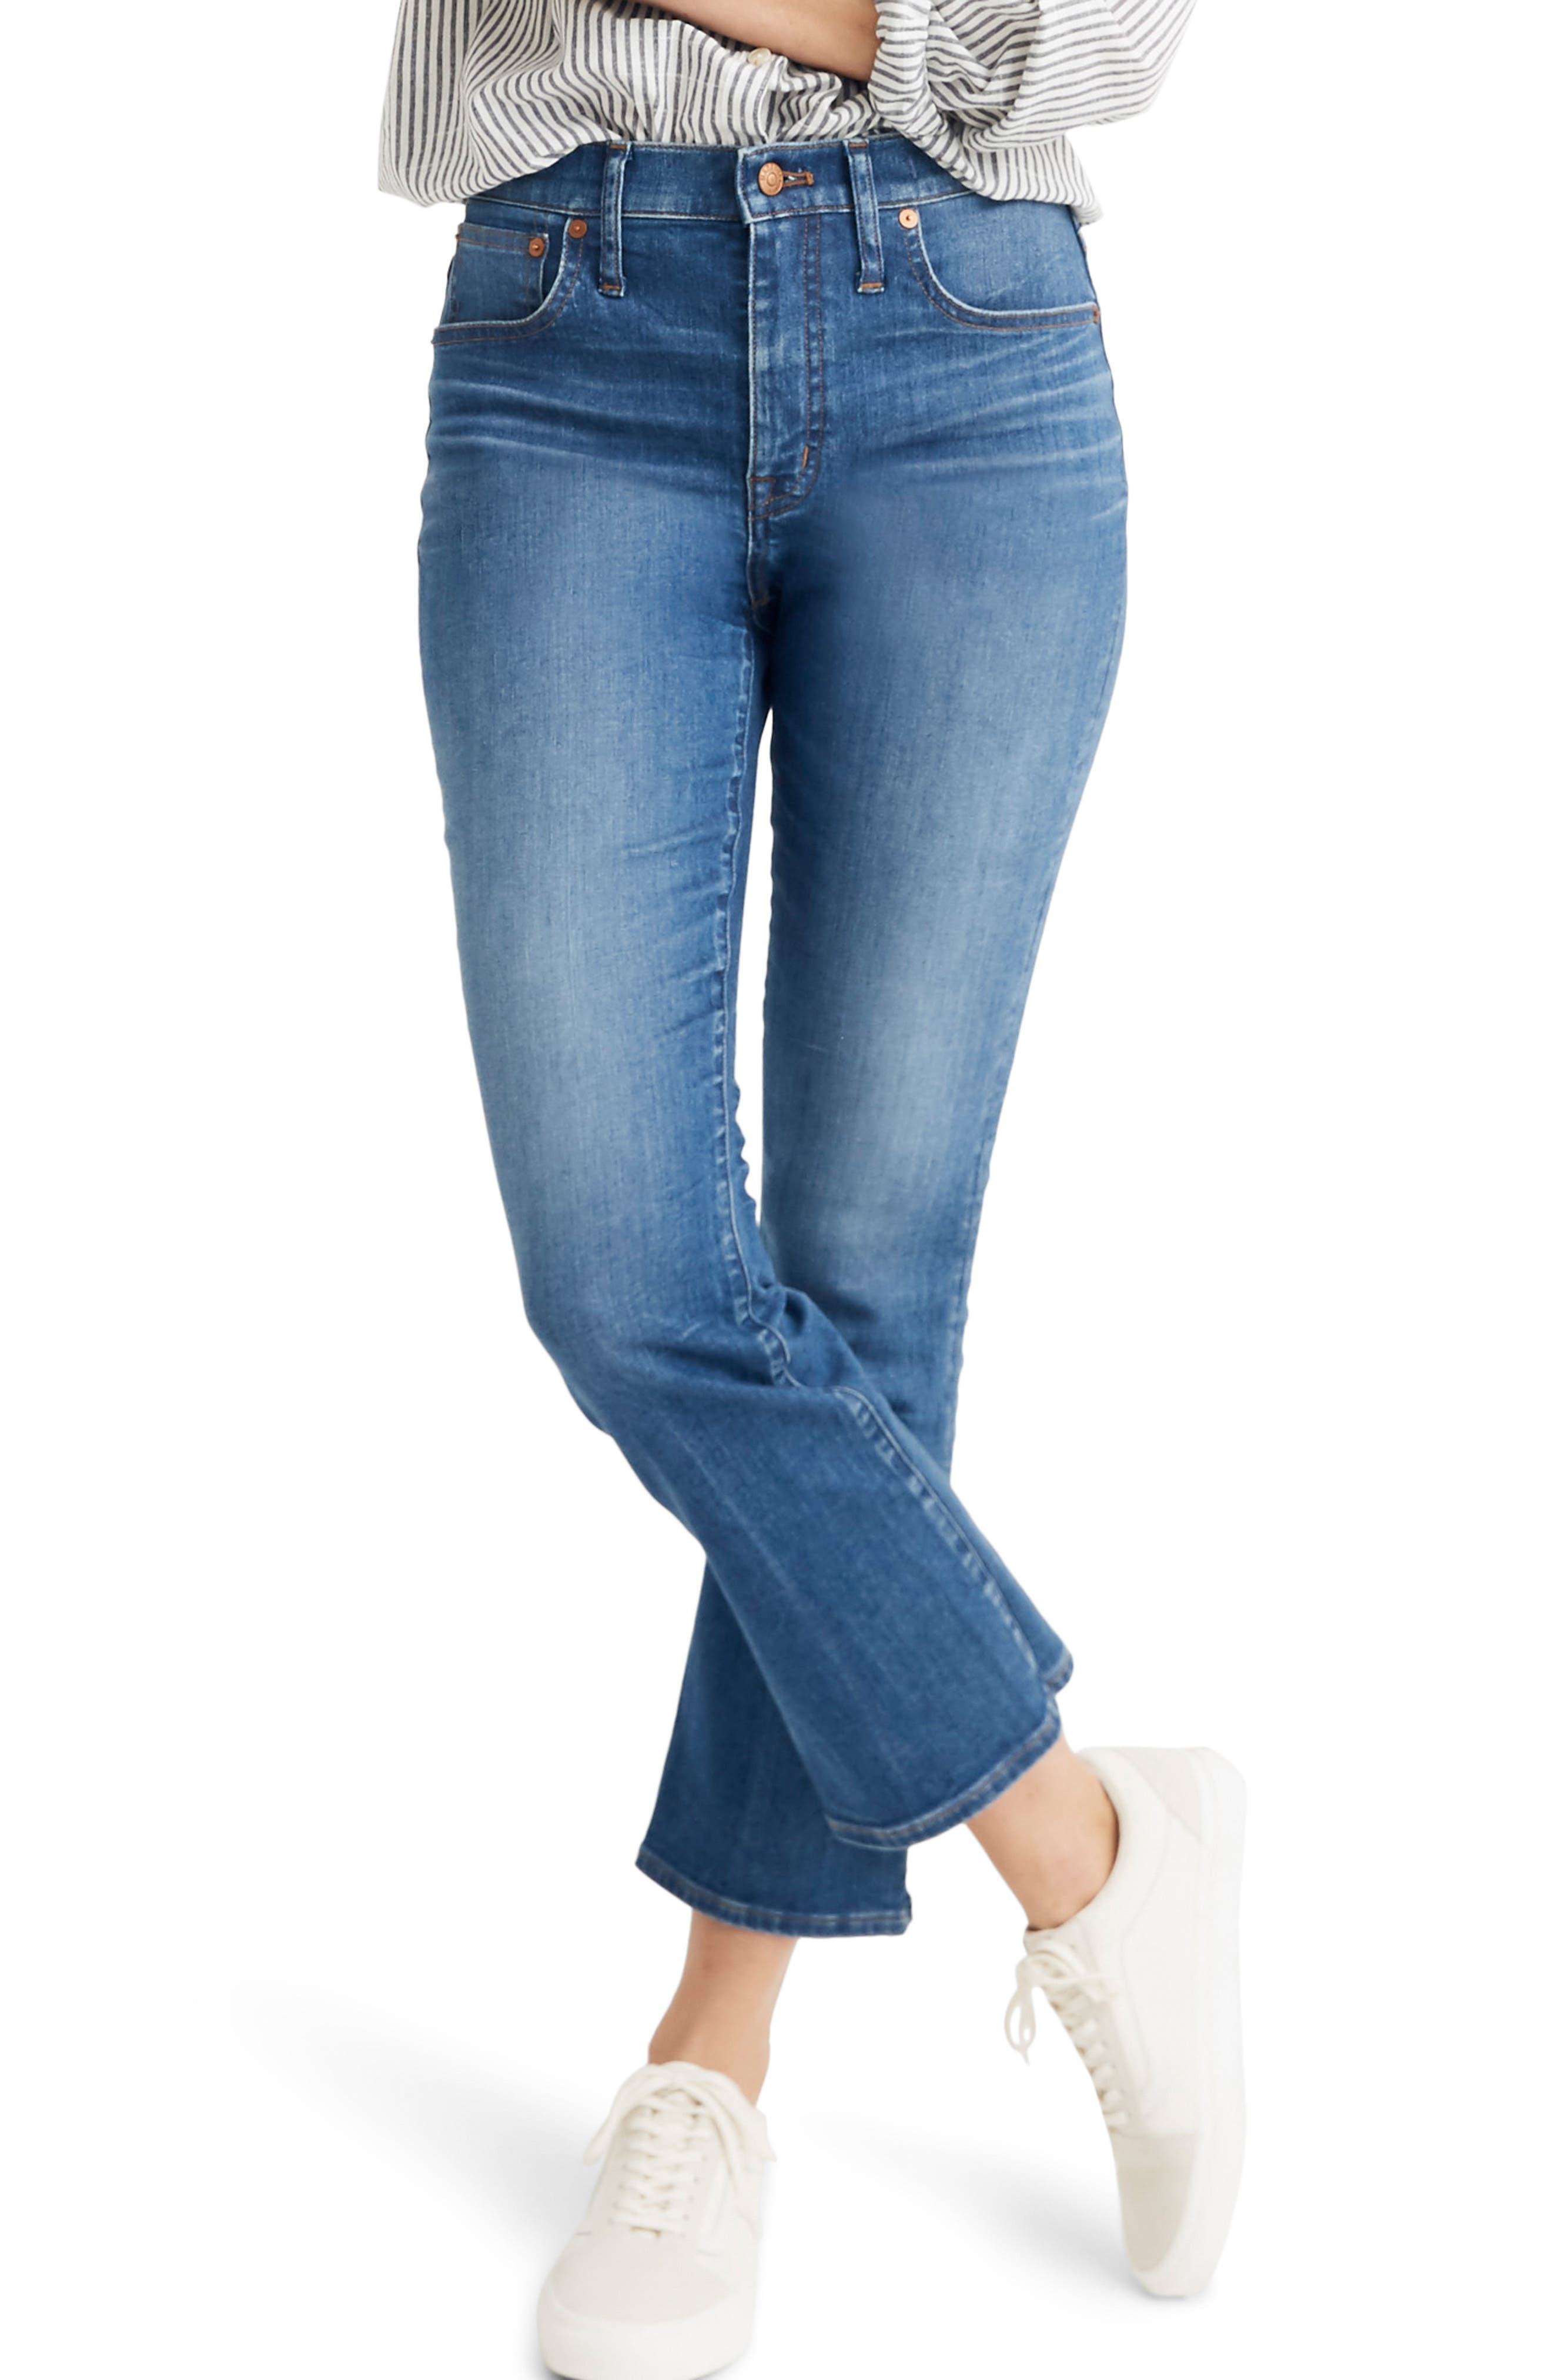 MADEWELL, Eco Edition Cali Demi Boot Jeans, Main thumbnail 1, color, TIERNEY WASH